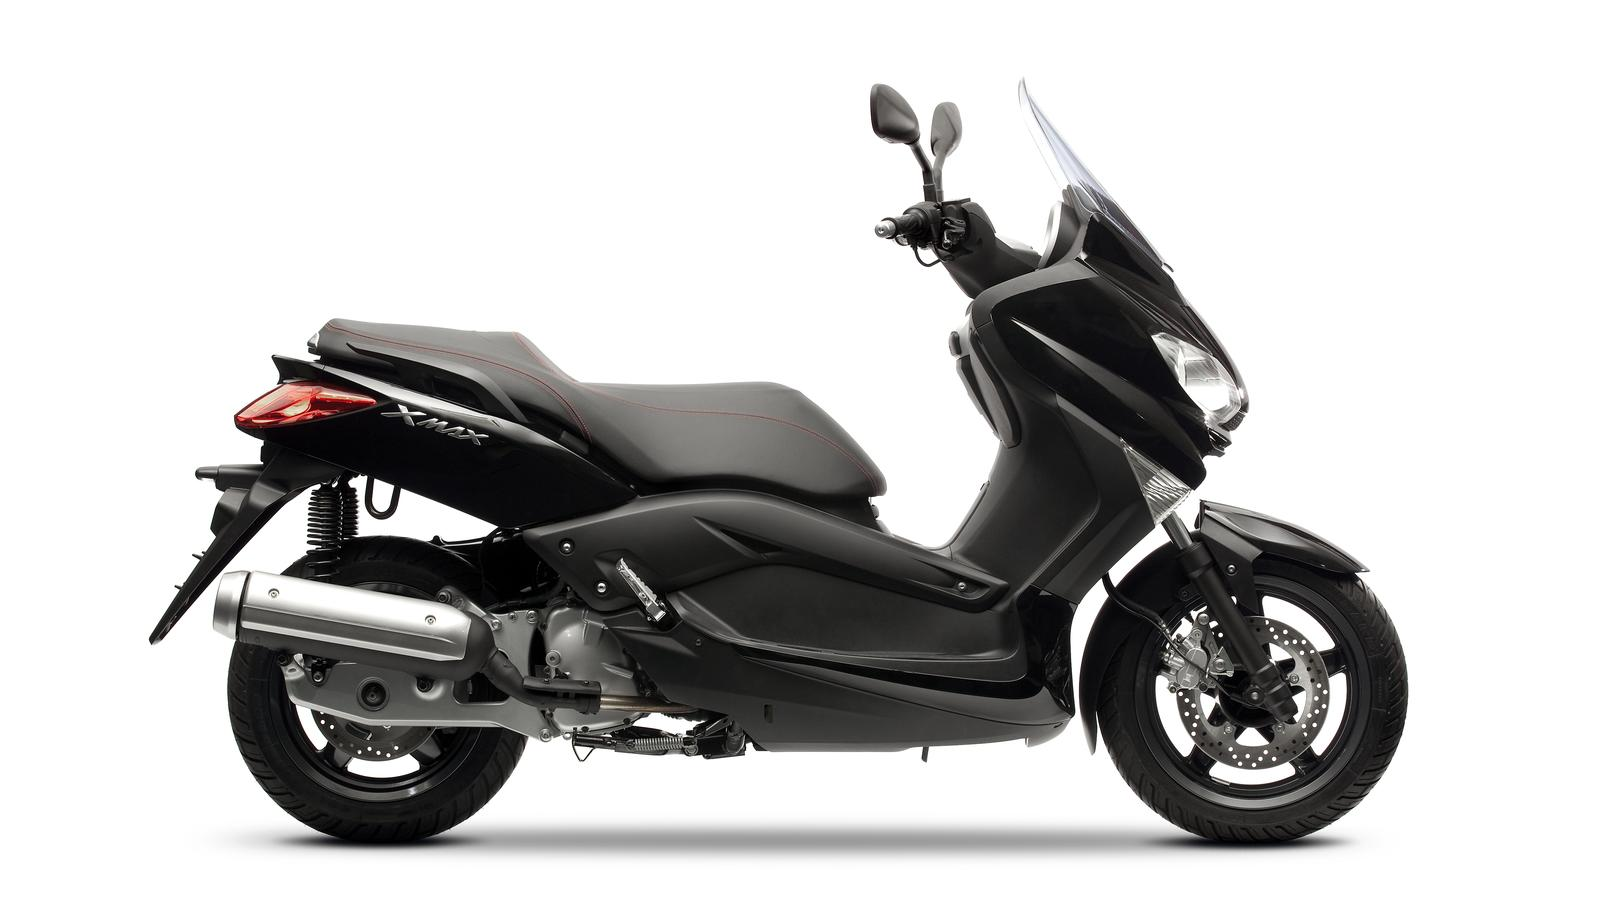 fiche revue technique yamaha x max 125 2011. Black Bedroom Furniture Sets. Home Design Ideas